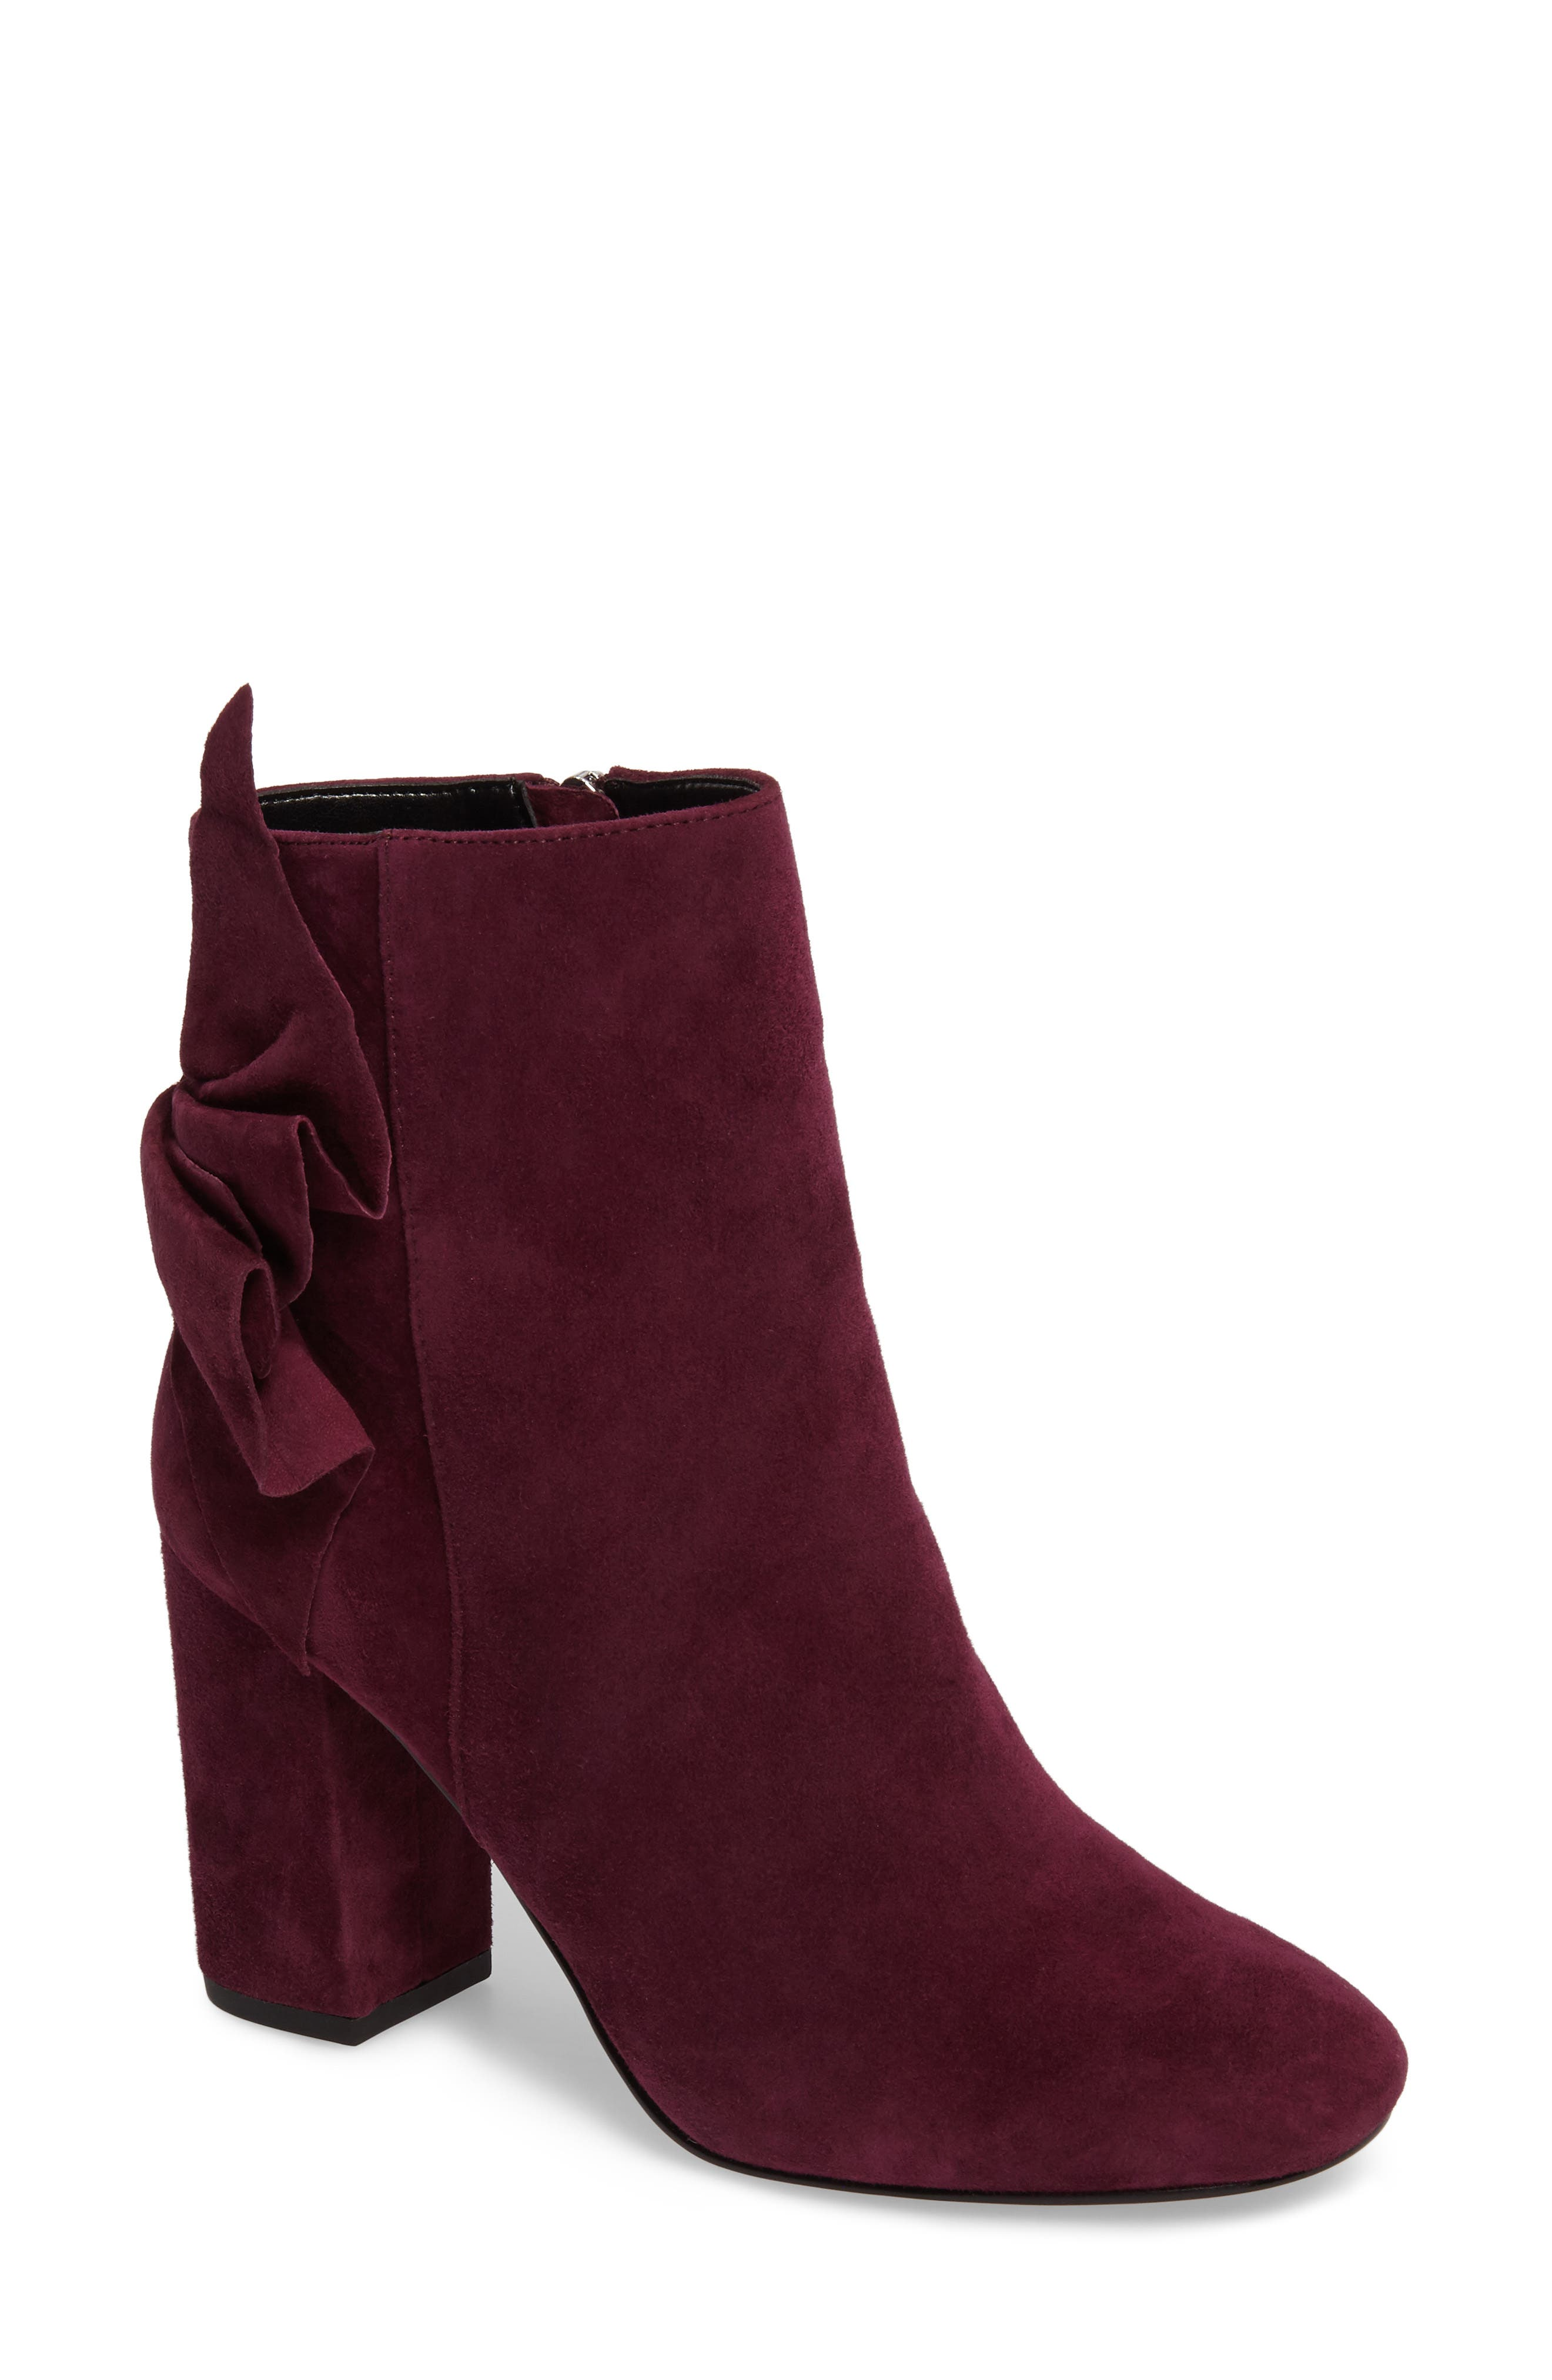 Remi Bow Bootie,                         Main,                         color, Eggplant Suede